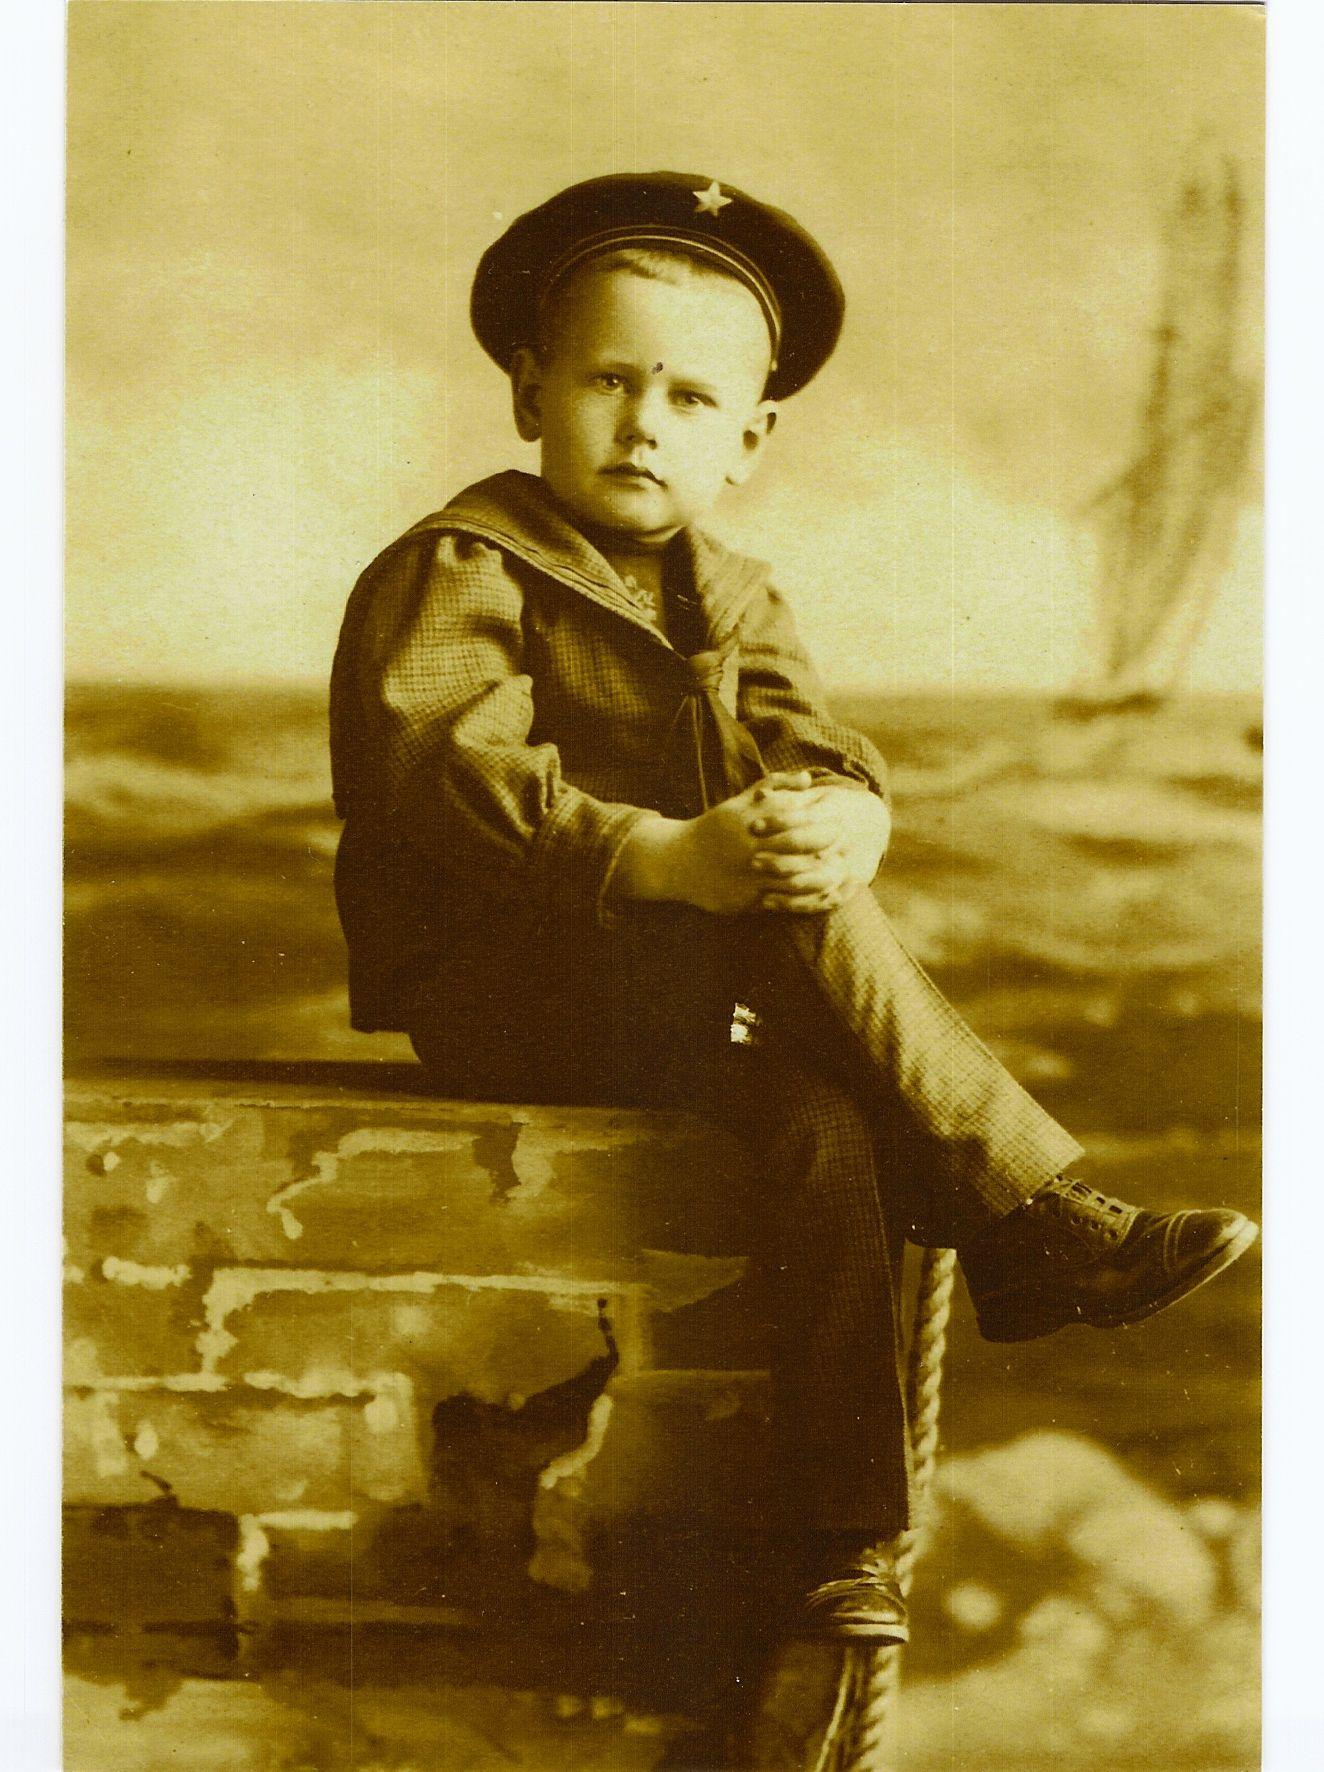 David Bently Bell My 2nd cousin 3x removed Birth 12 Jul 1896 in Los Angeles, Los Angeles, California, United States Death 19 Dec 1976 in Paramount, Los Angeles, California, USA